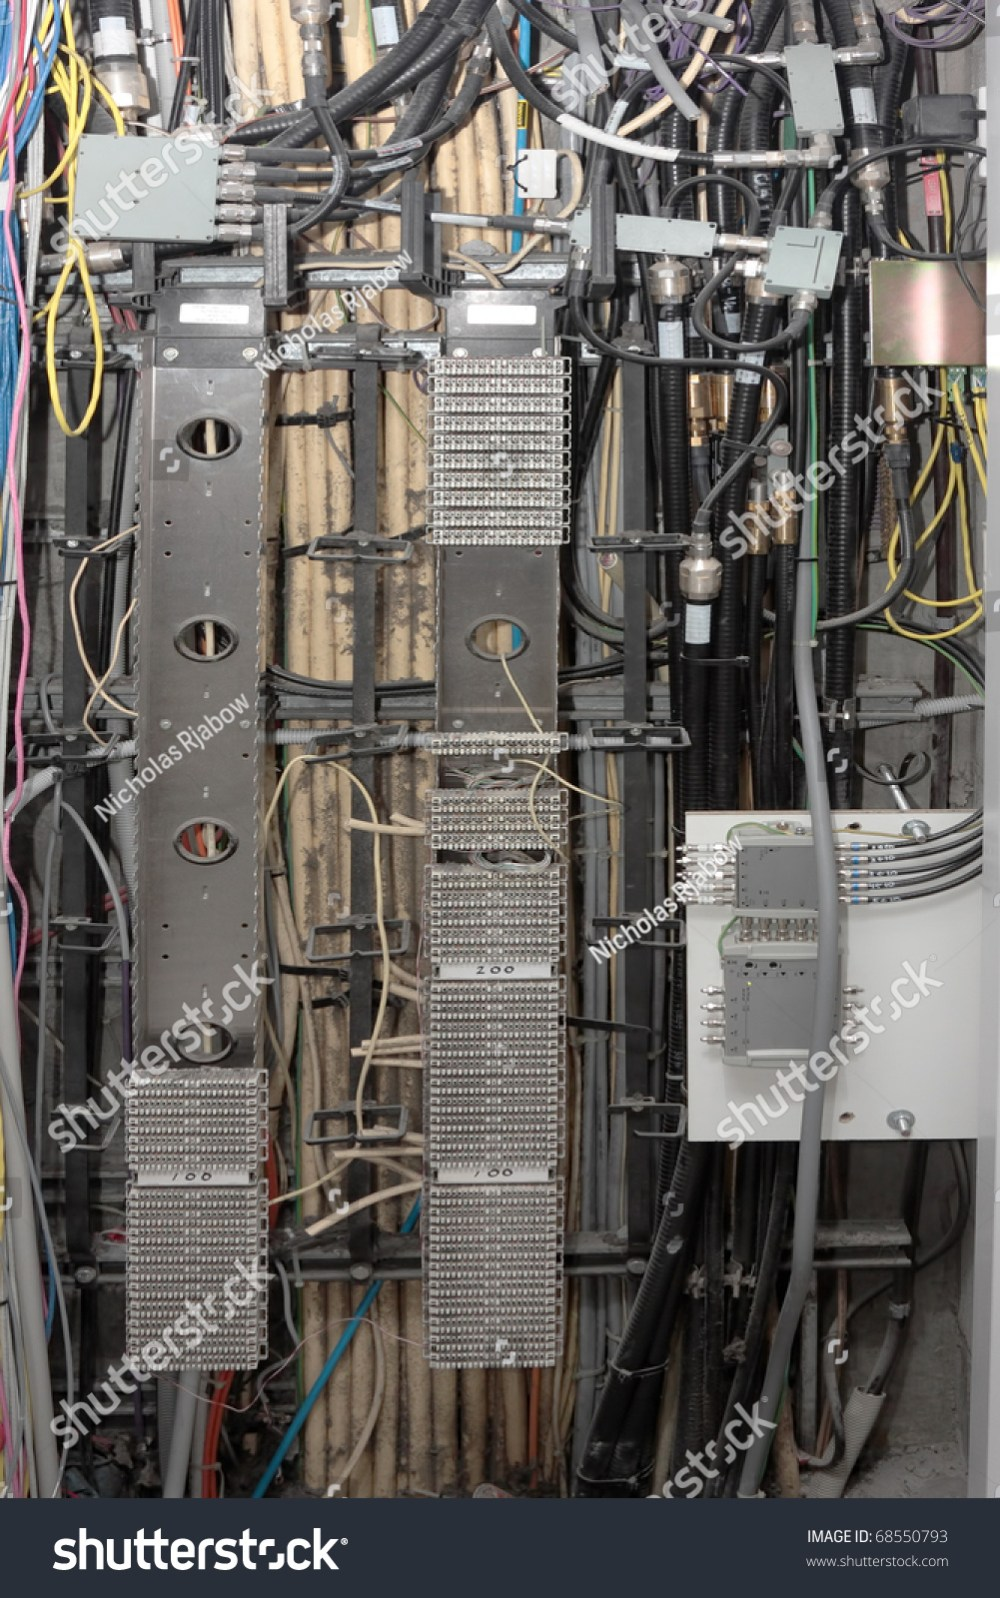 medium resolution of a telecommunications cabinet and wiring